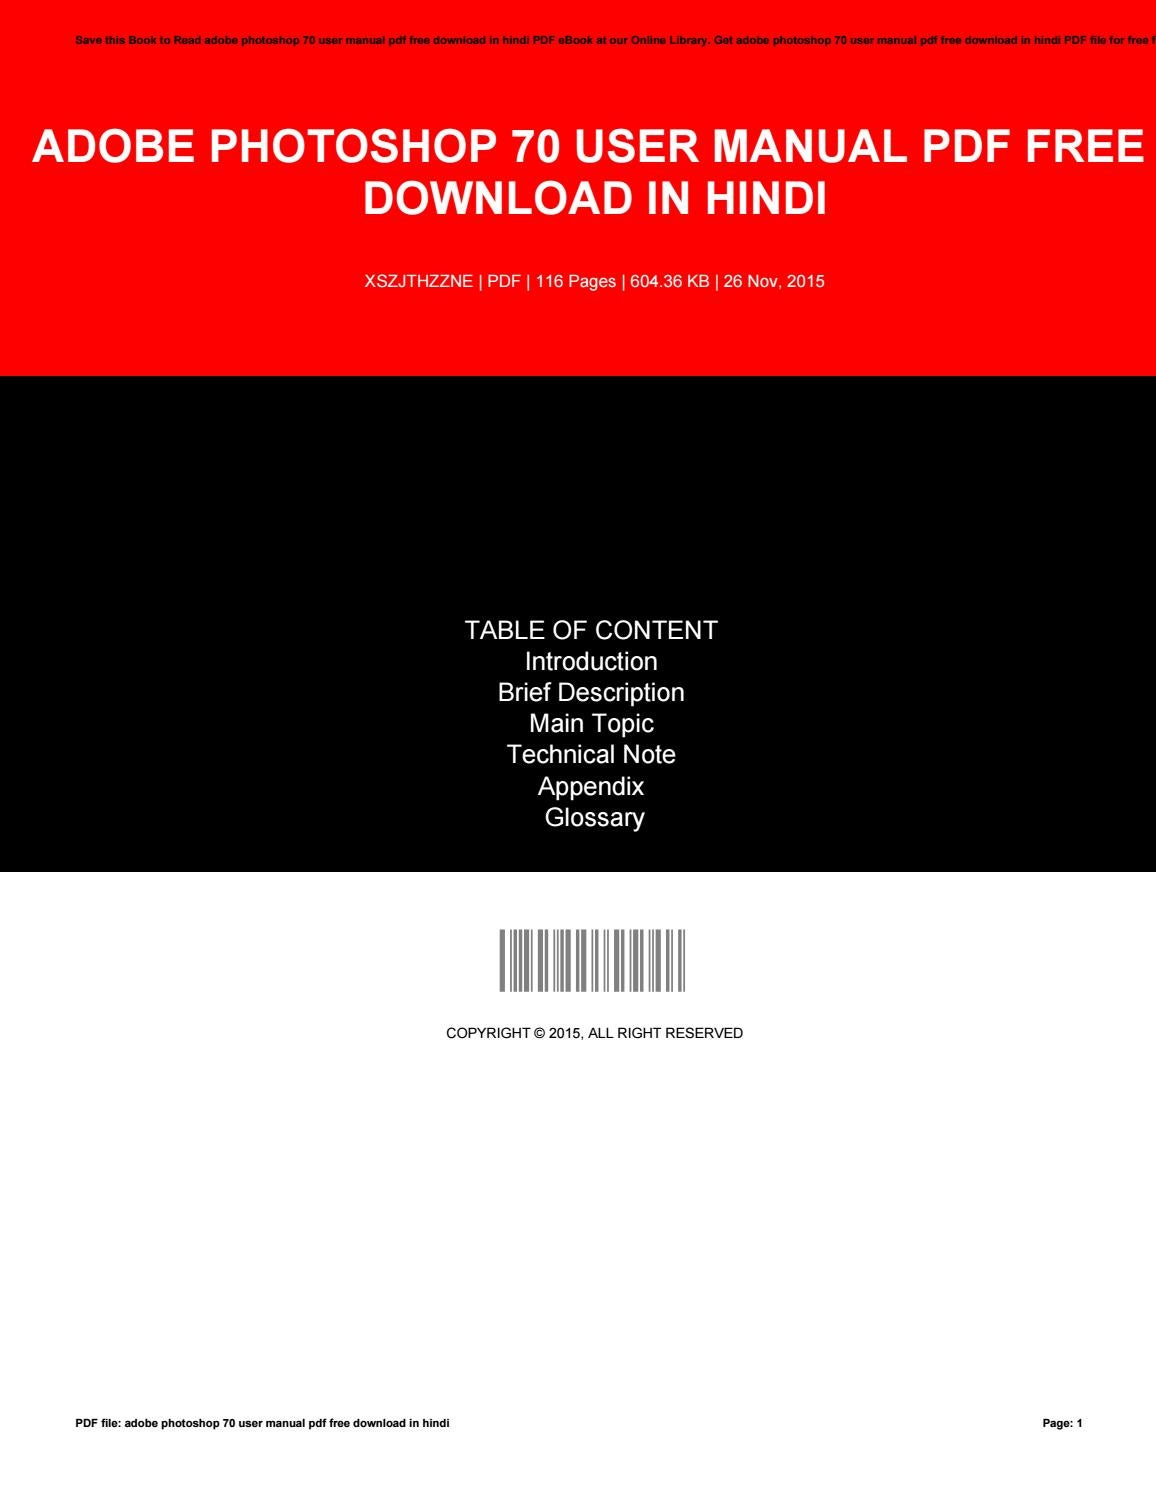 Adobe photoshop 70 user manual pdf free download in hindi by c154 - issuu